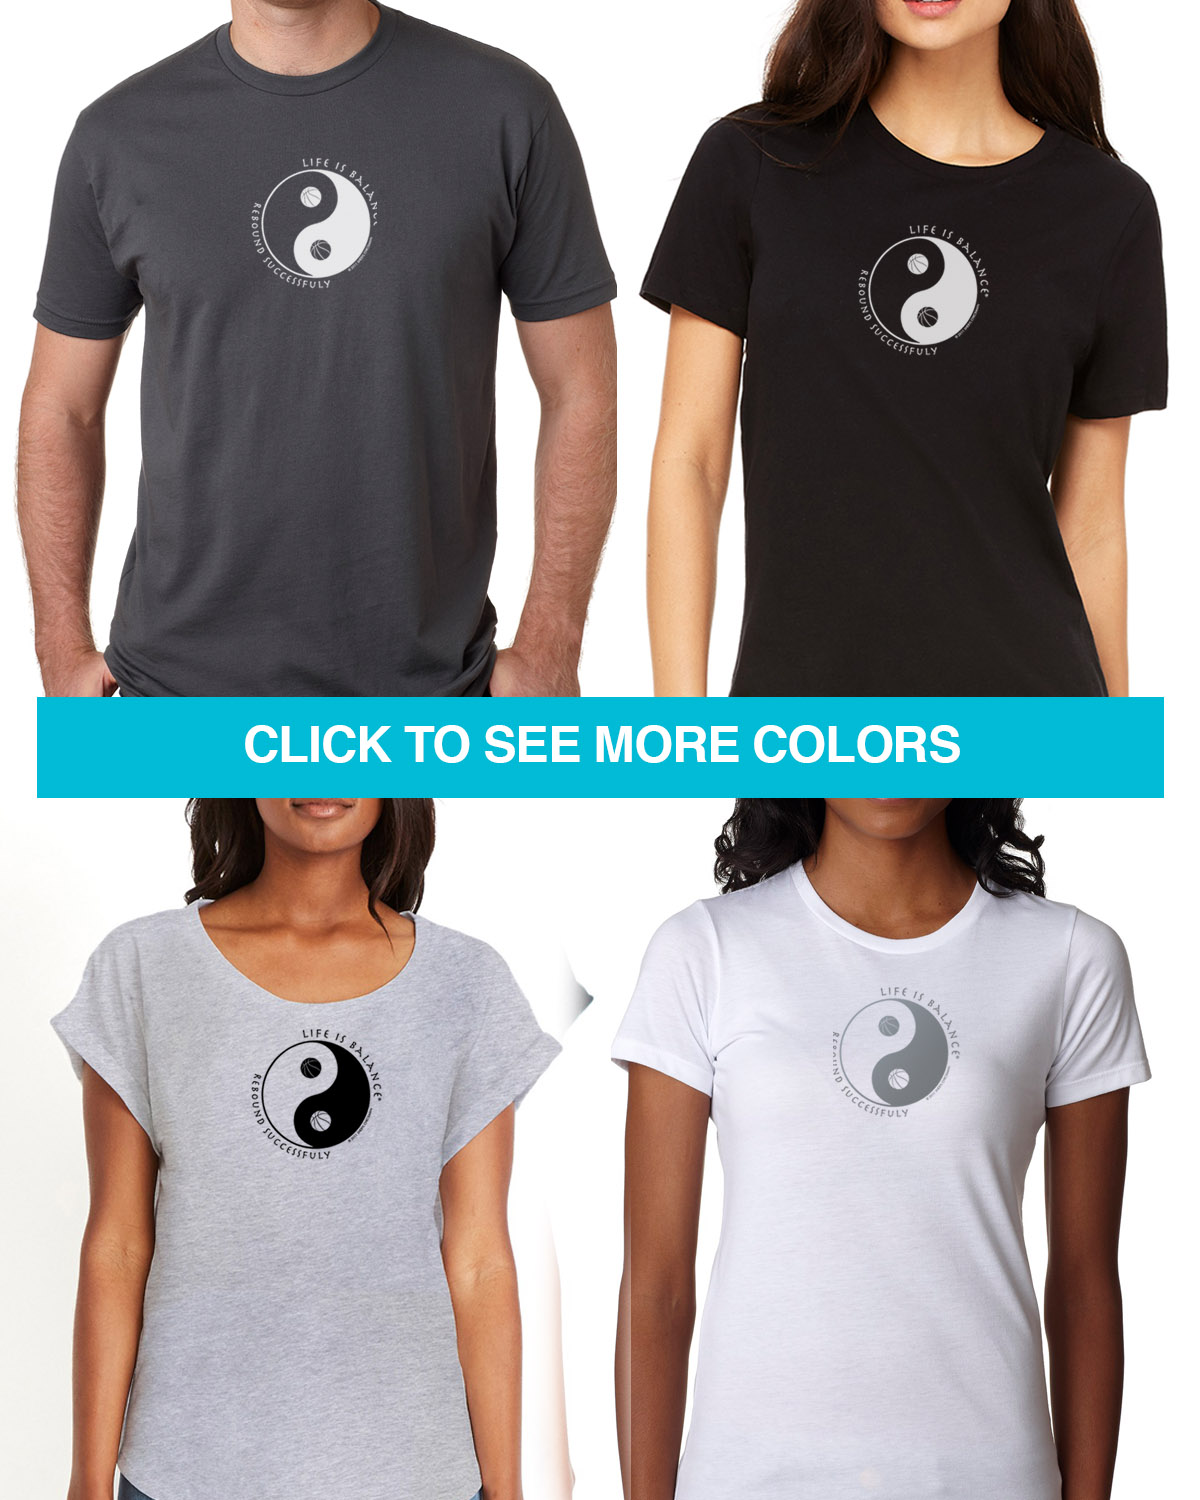 Short sleeve basketball t-shirts for Men and Women. Women's fitted styles and a unisex style for men and women .